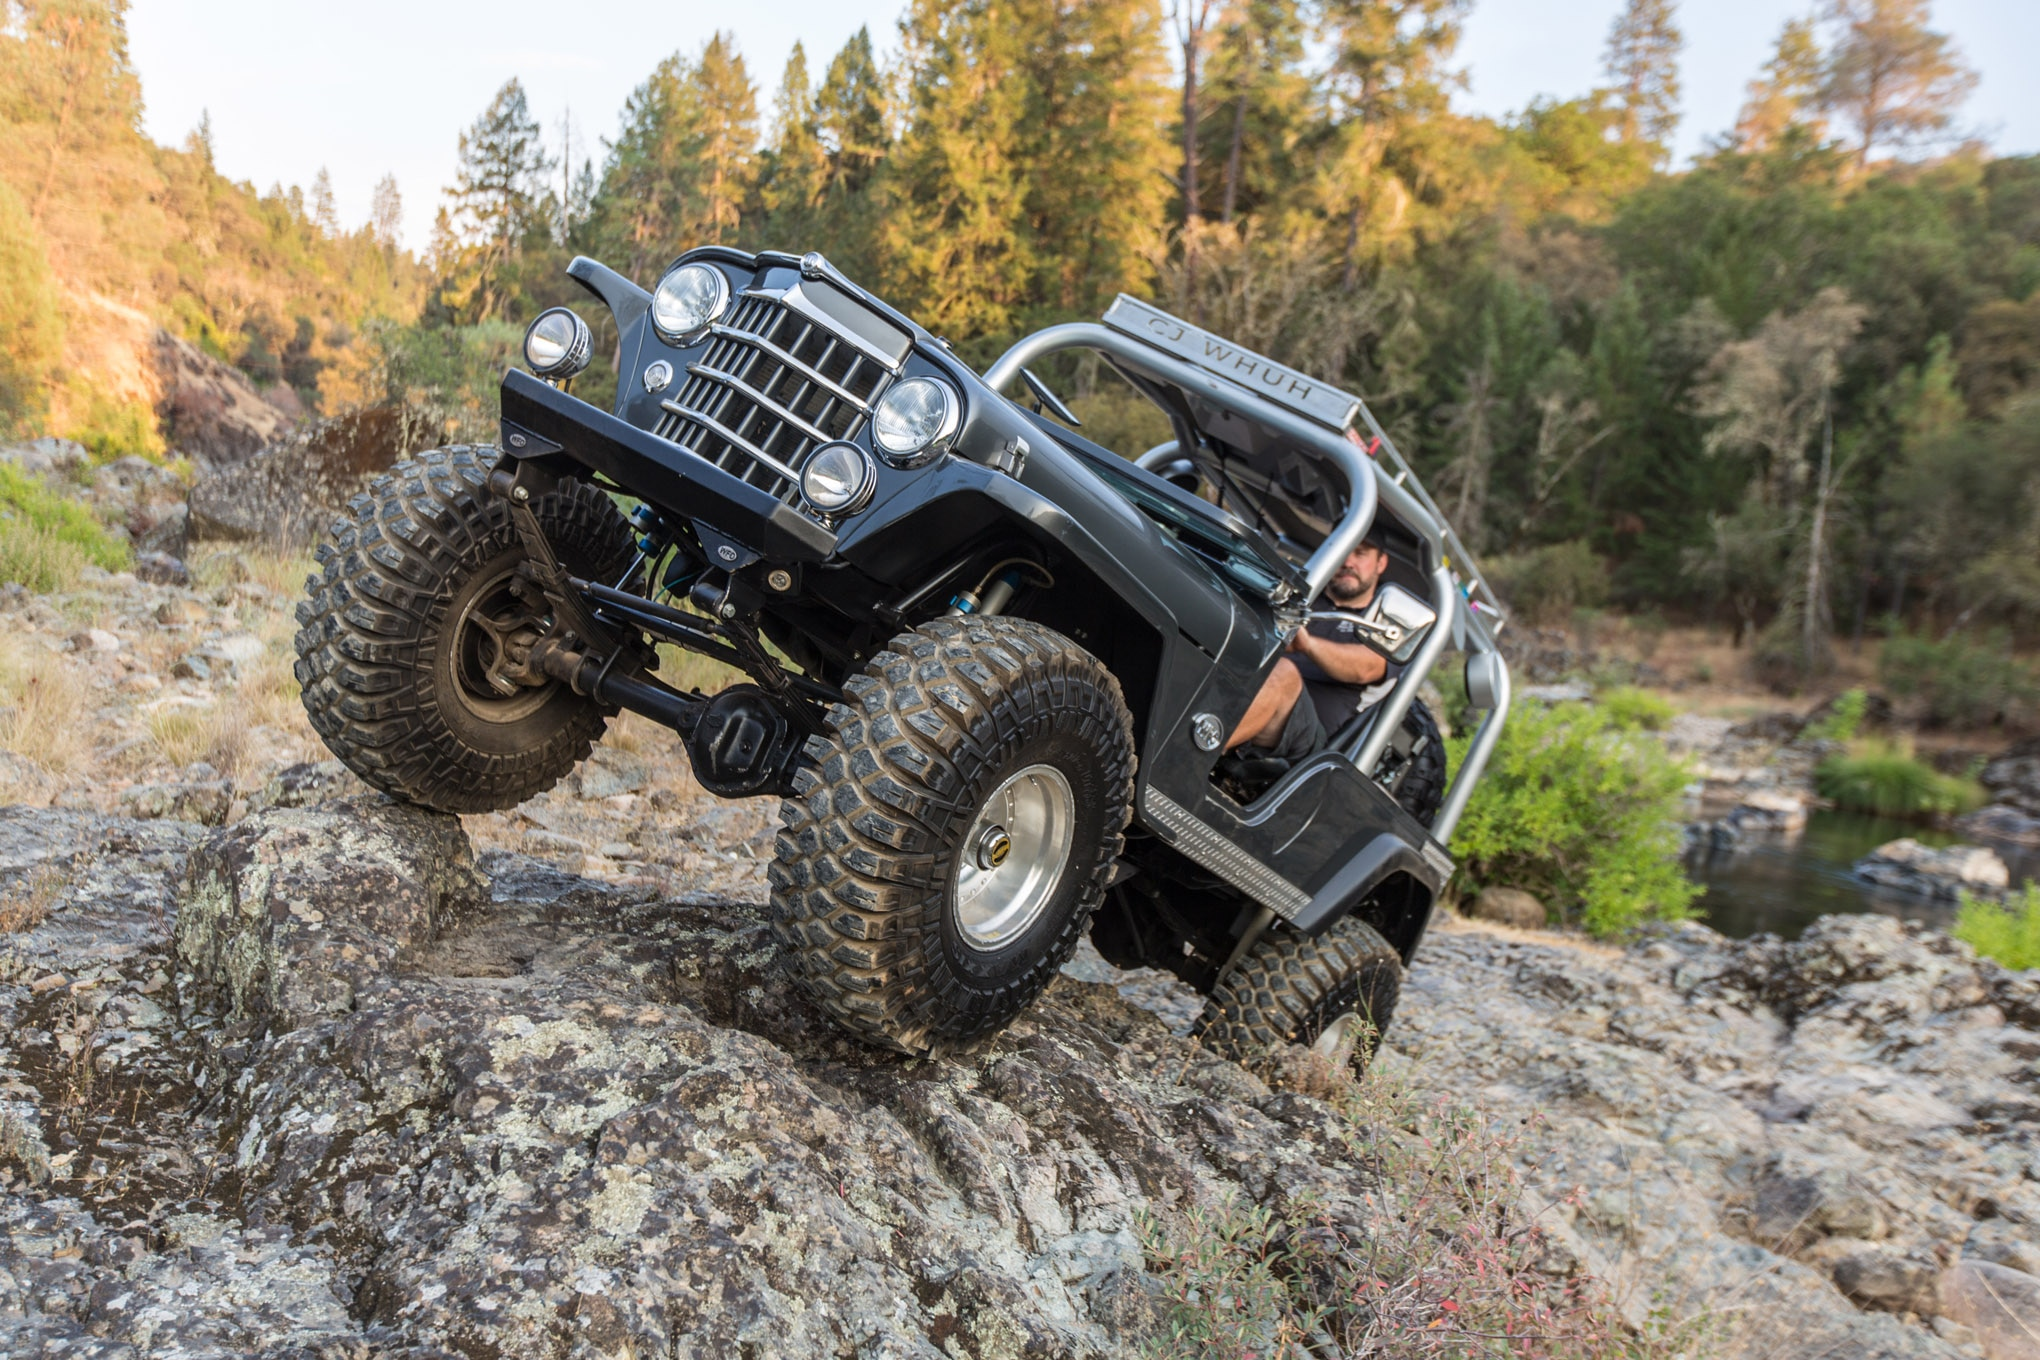 willys cj6 lead photo